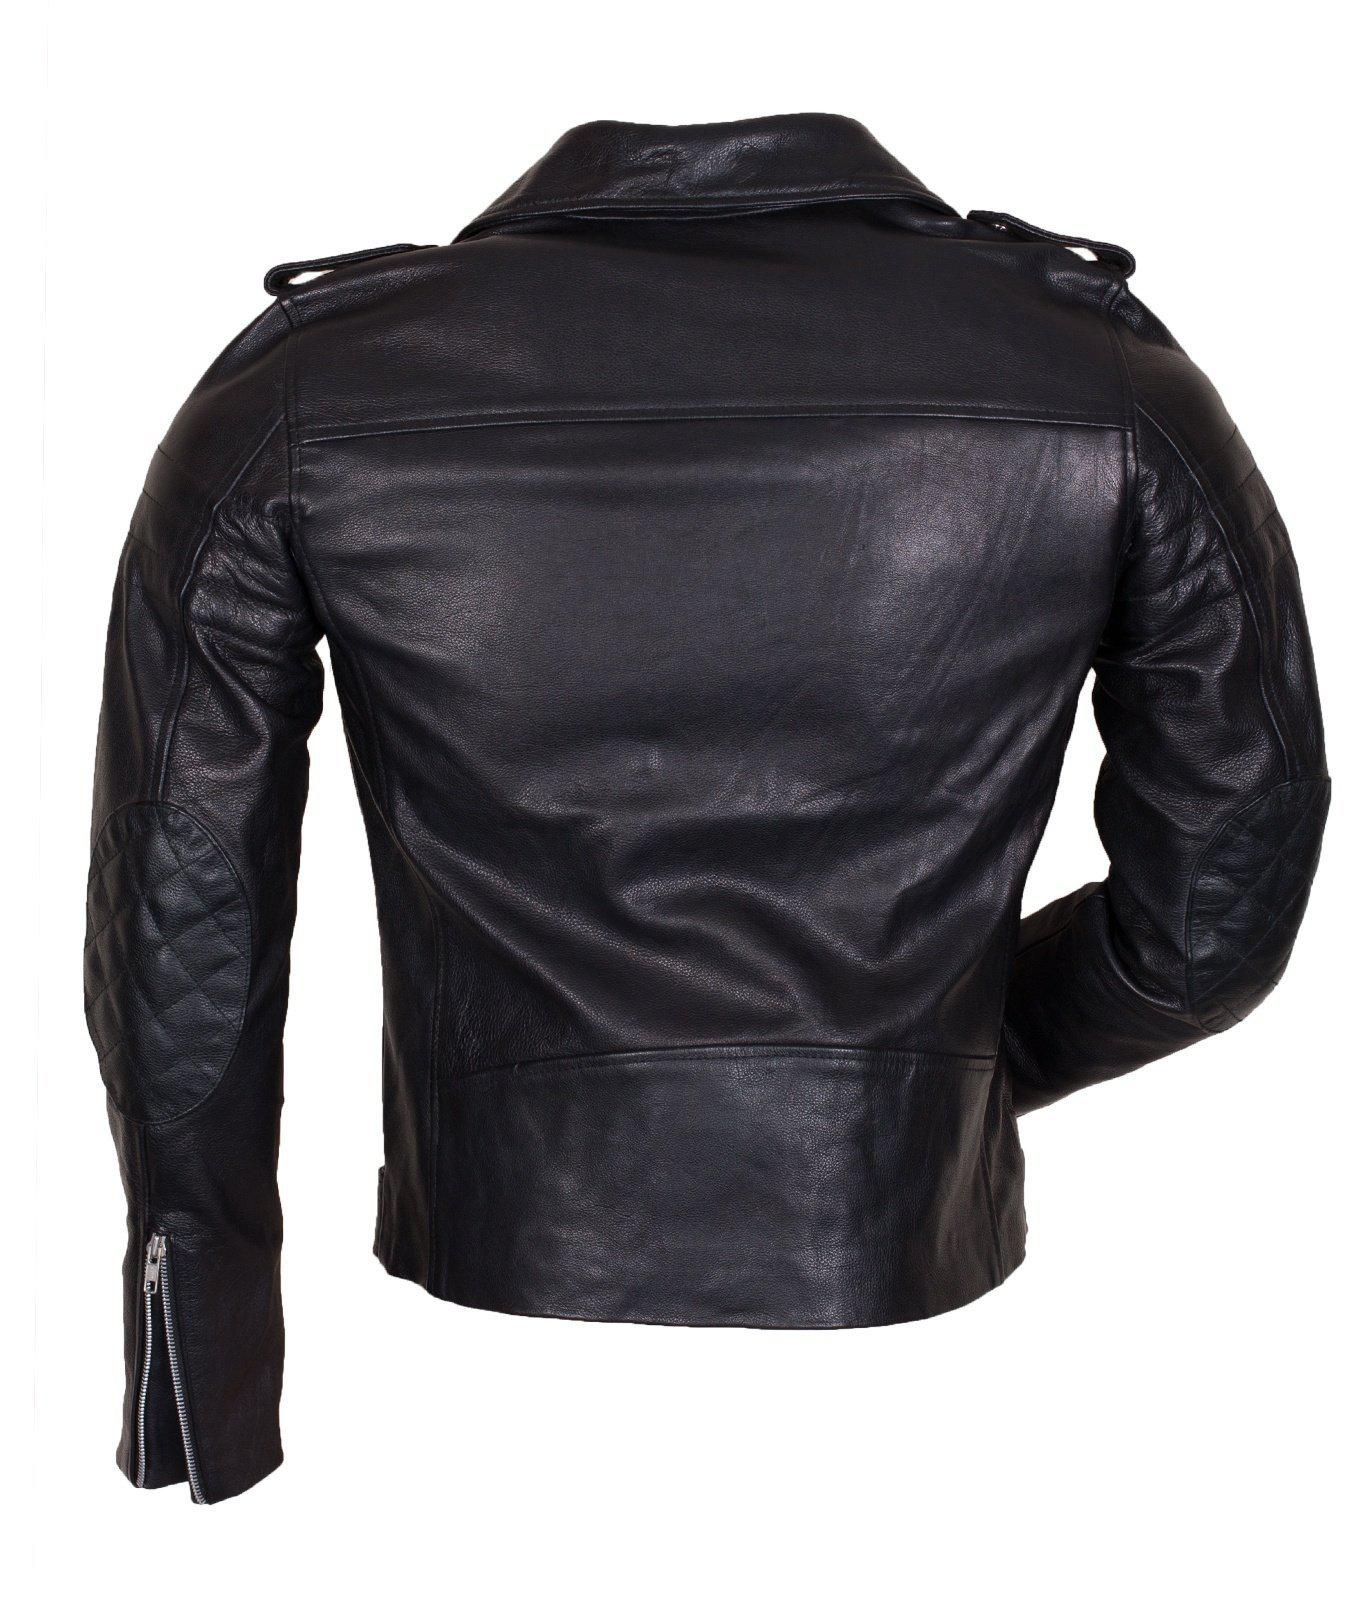 Marlon Brando Leather Jacket in Black